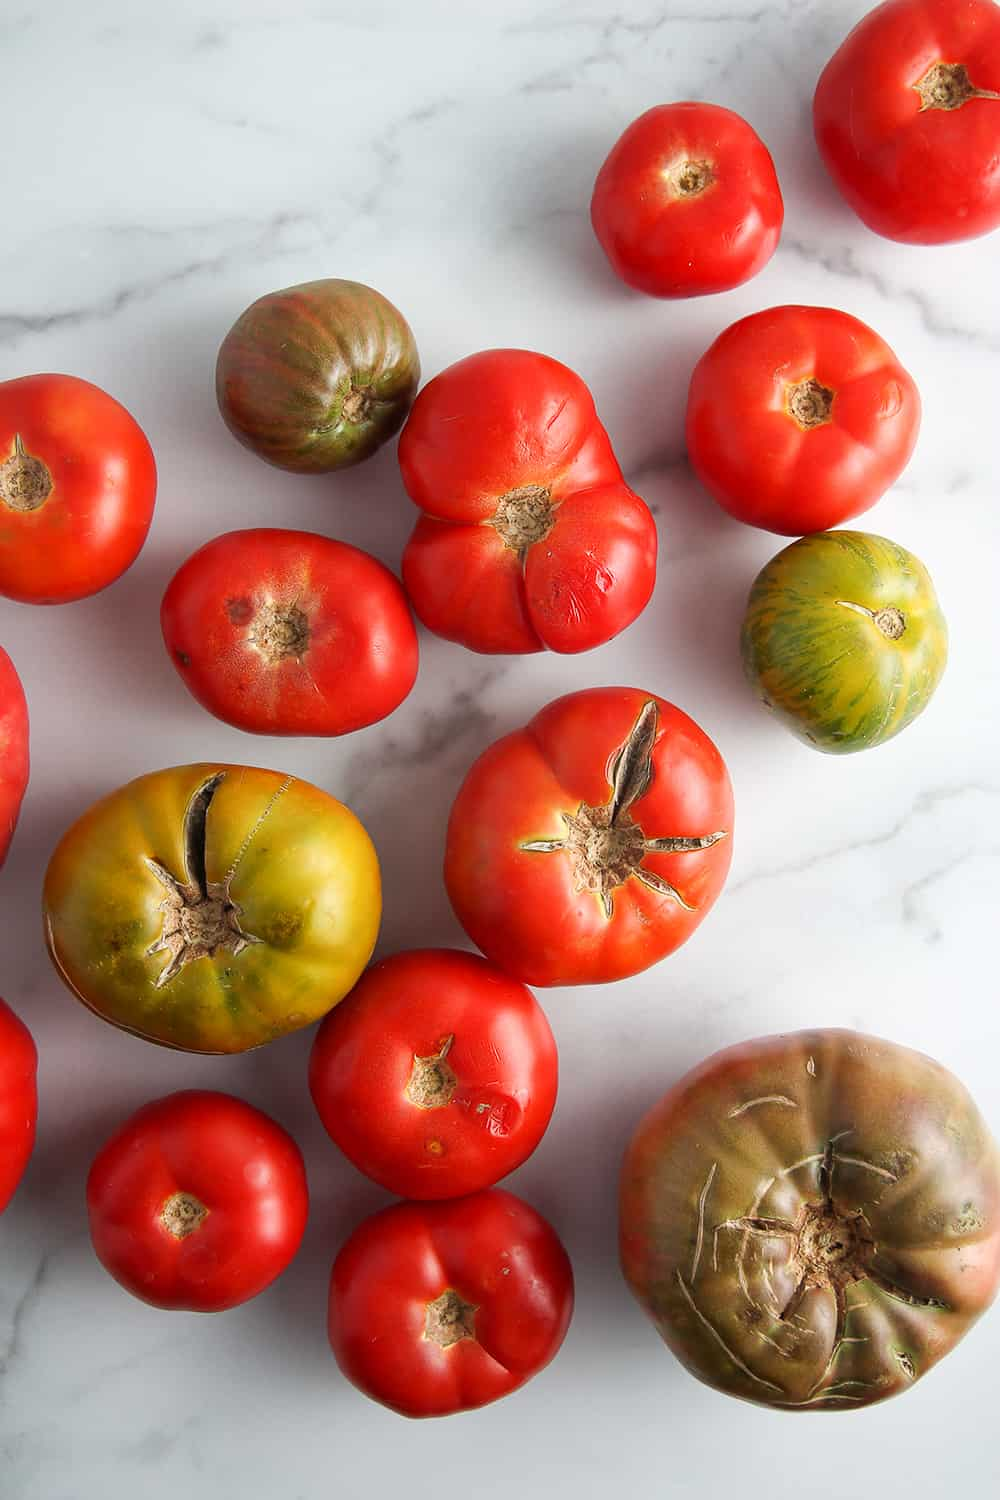 Assorted fresh heirloom tomatoes on a marble surface